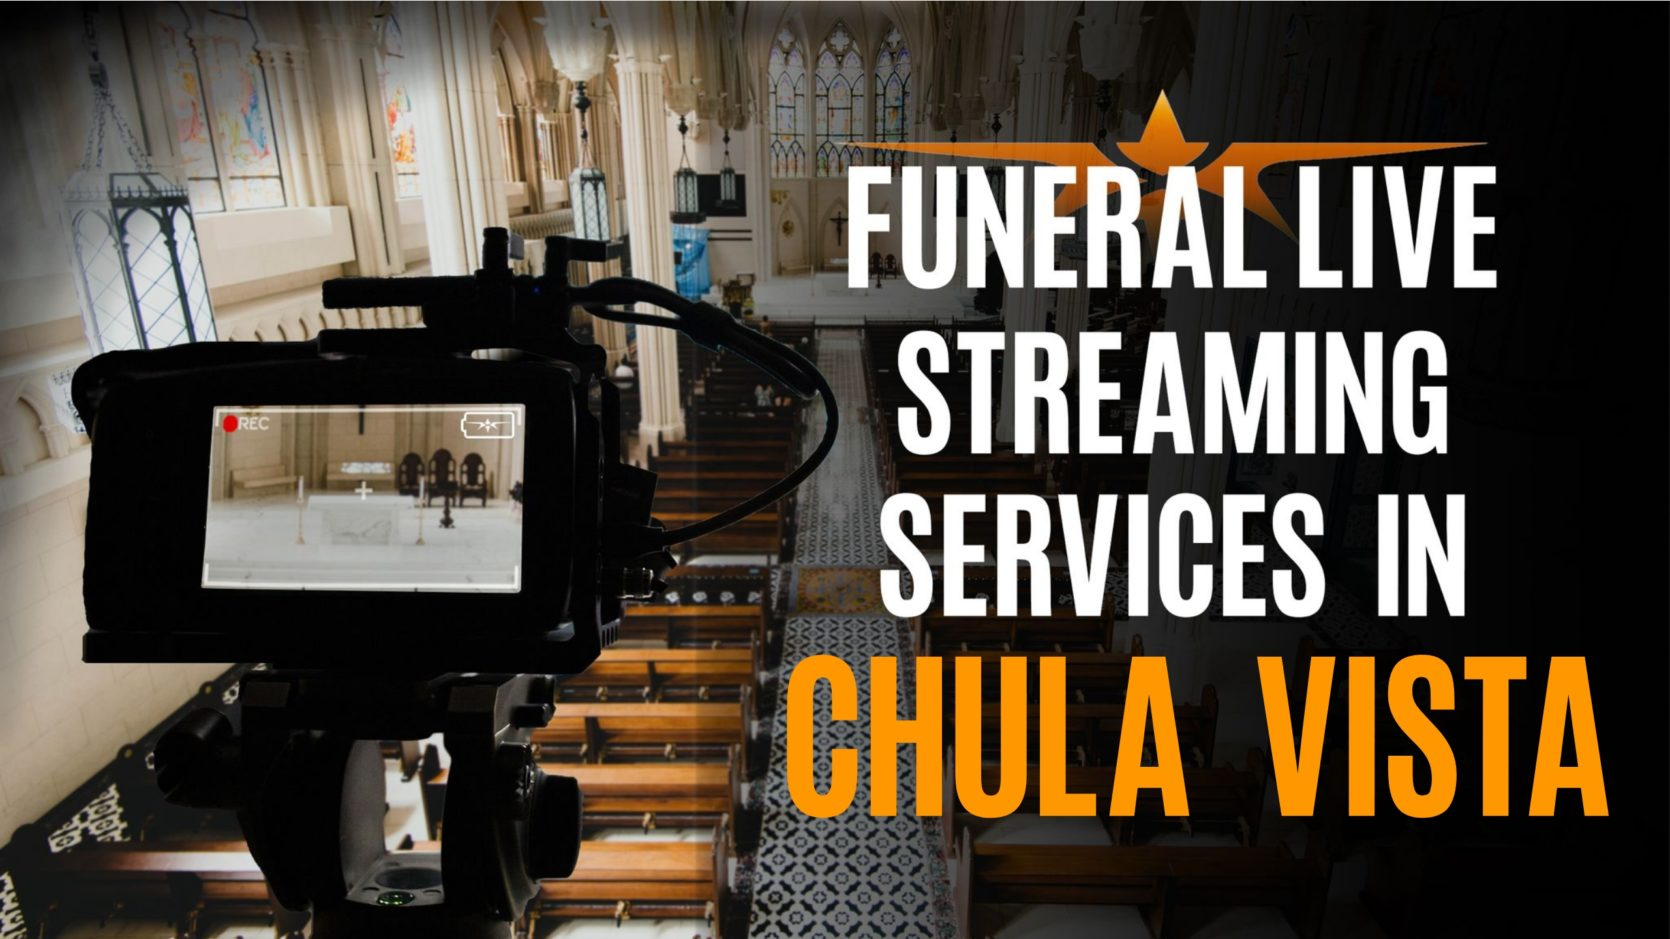 Funeral Live Streaming Services in Chula Vista